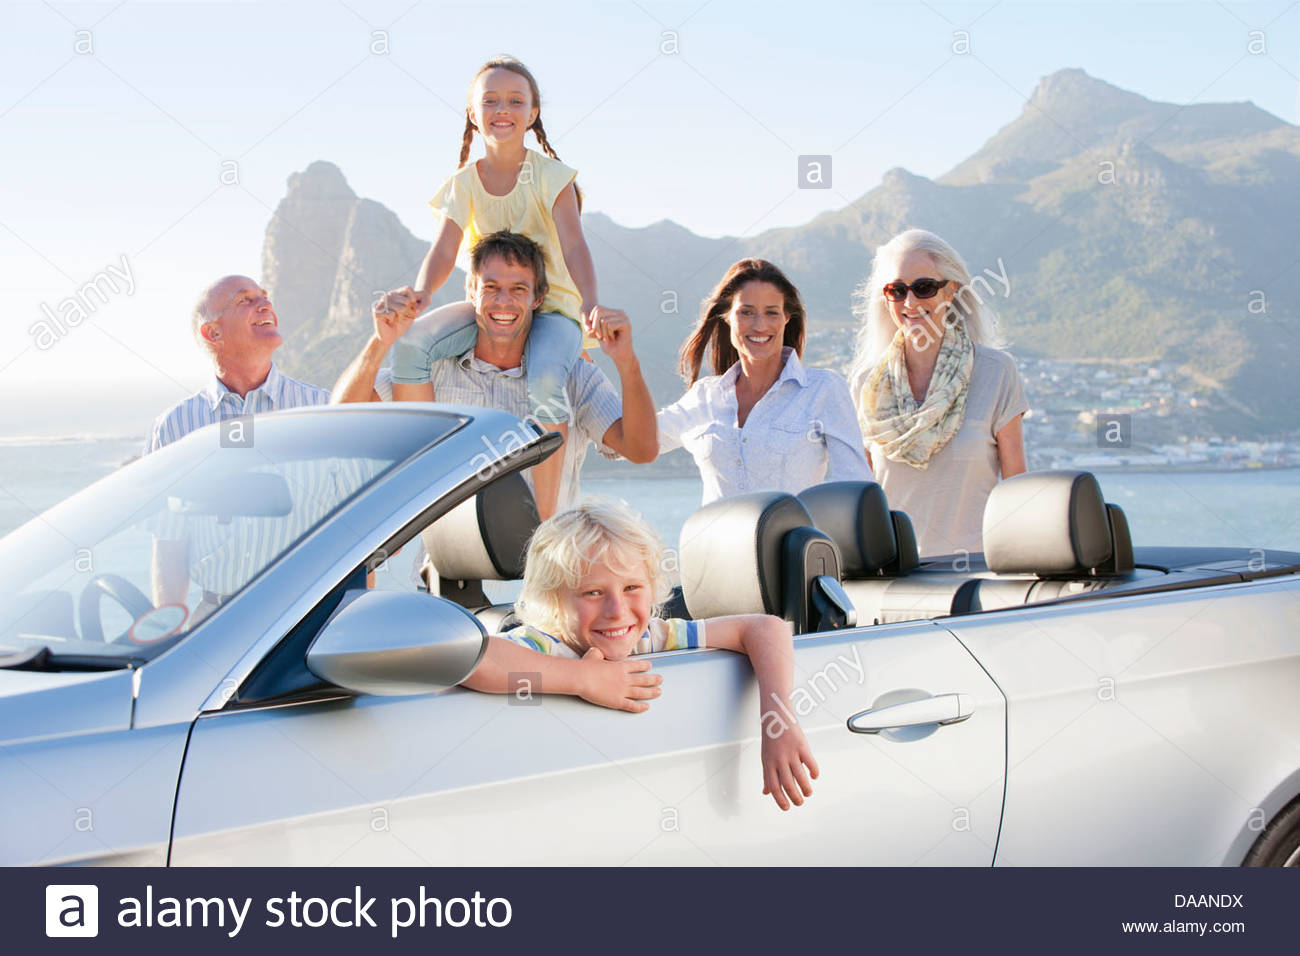 Portrait of smiling boy in convertible with multi-generation family and ocean in background - Stock Image